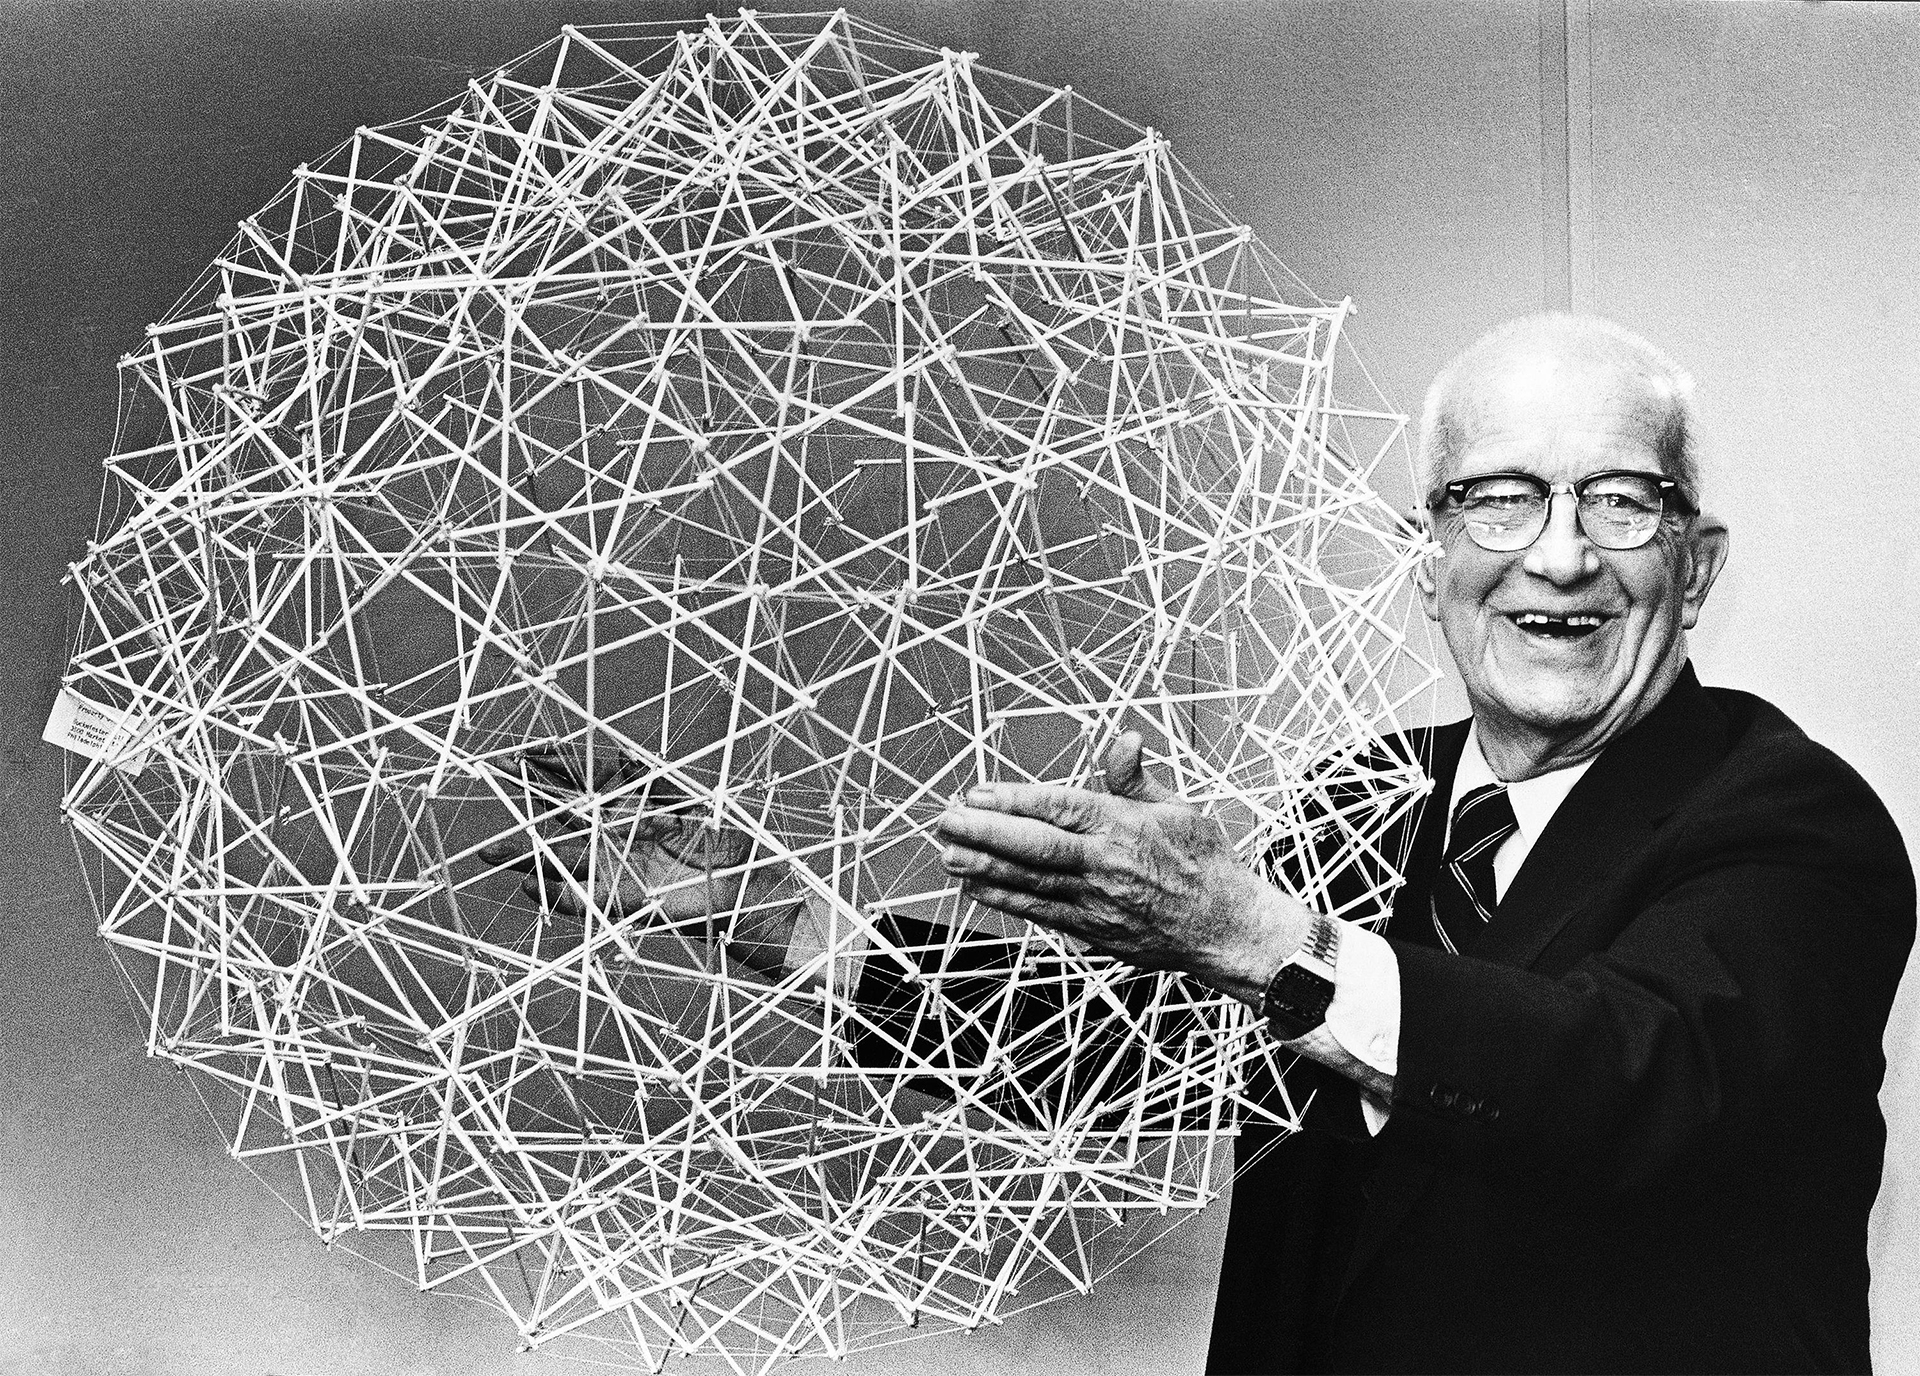 R. Buckminster Fuller - Tunings